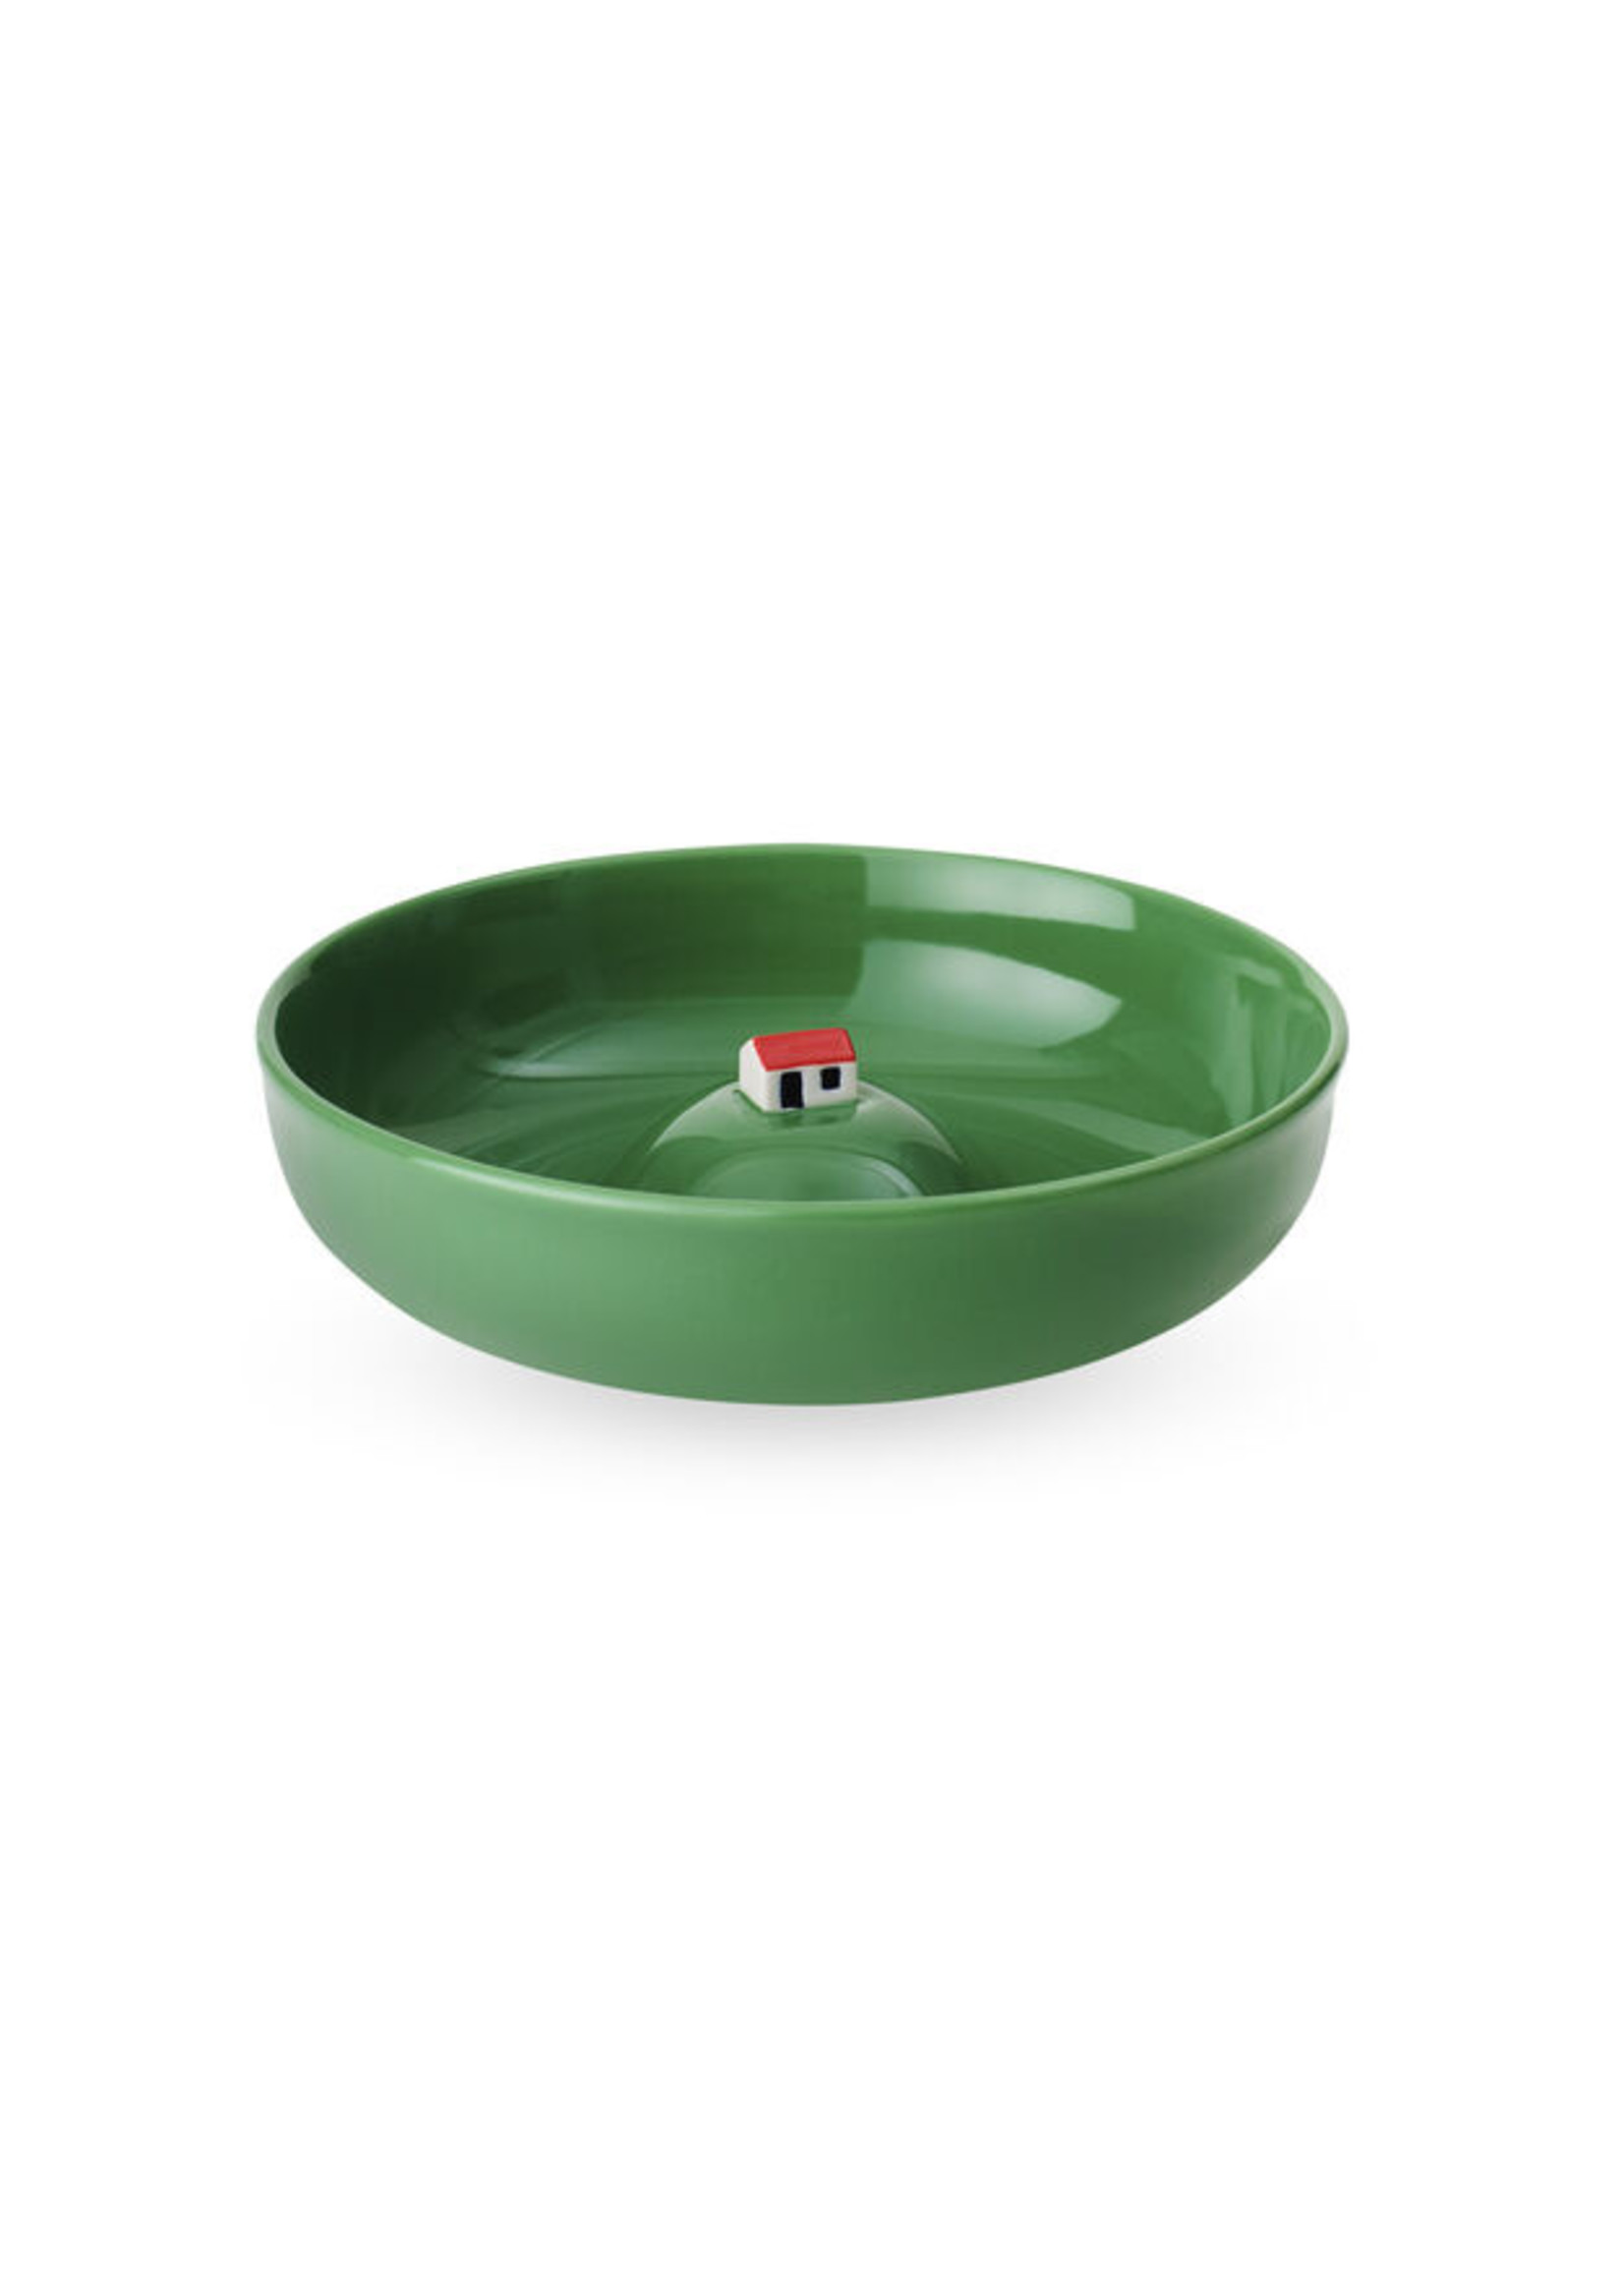 Bowl with house green from MoMA